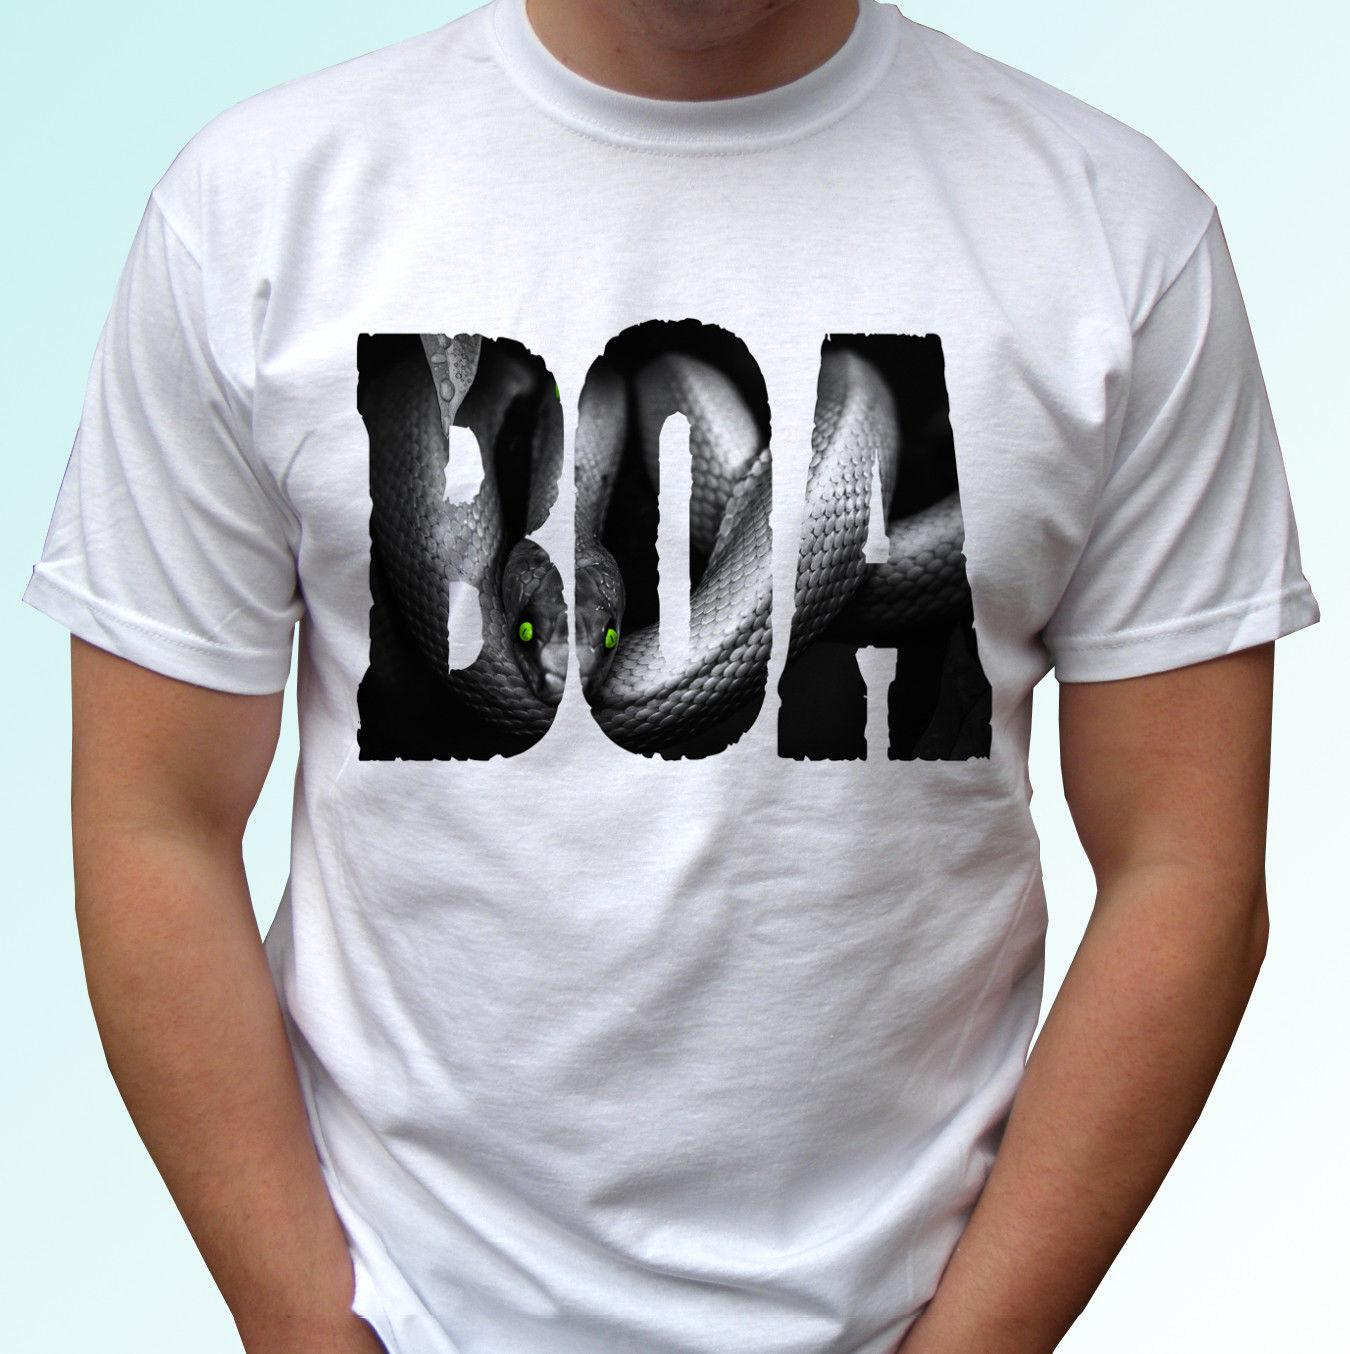 83ea9f19 BOA Black Snake T Shirt Top Reptile Tee Animal Design Mens Womens Kids  Sizes Silly T Shirts Interesting T Shirts From Xsy11tshirt, $12.05|  DHgate.Com